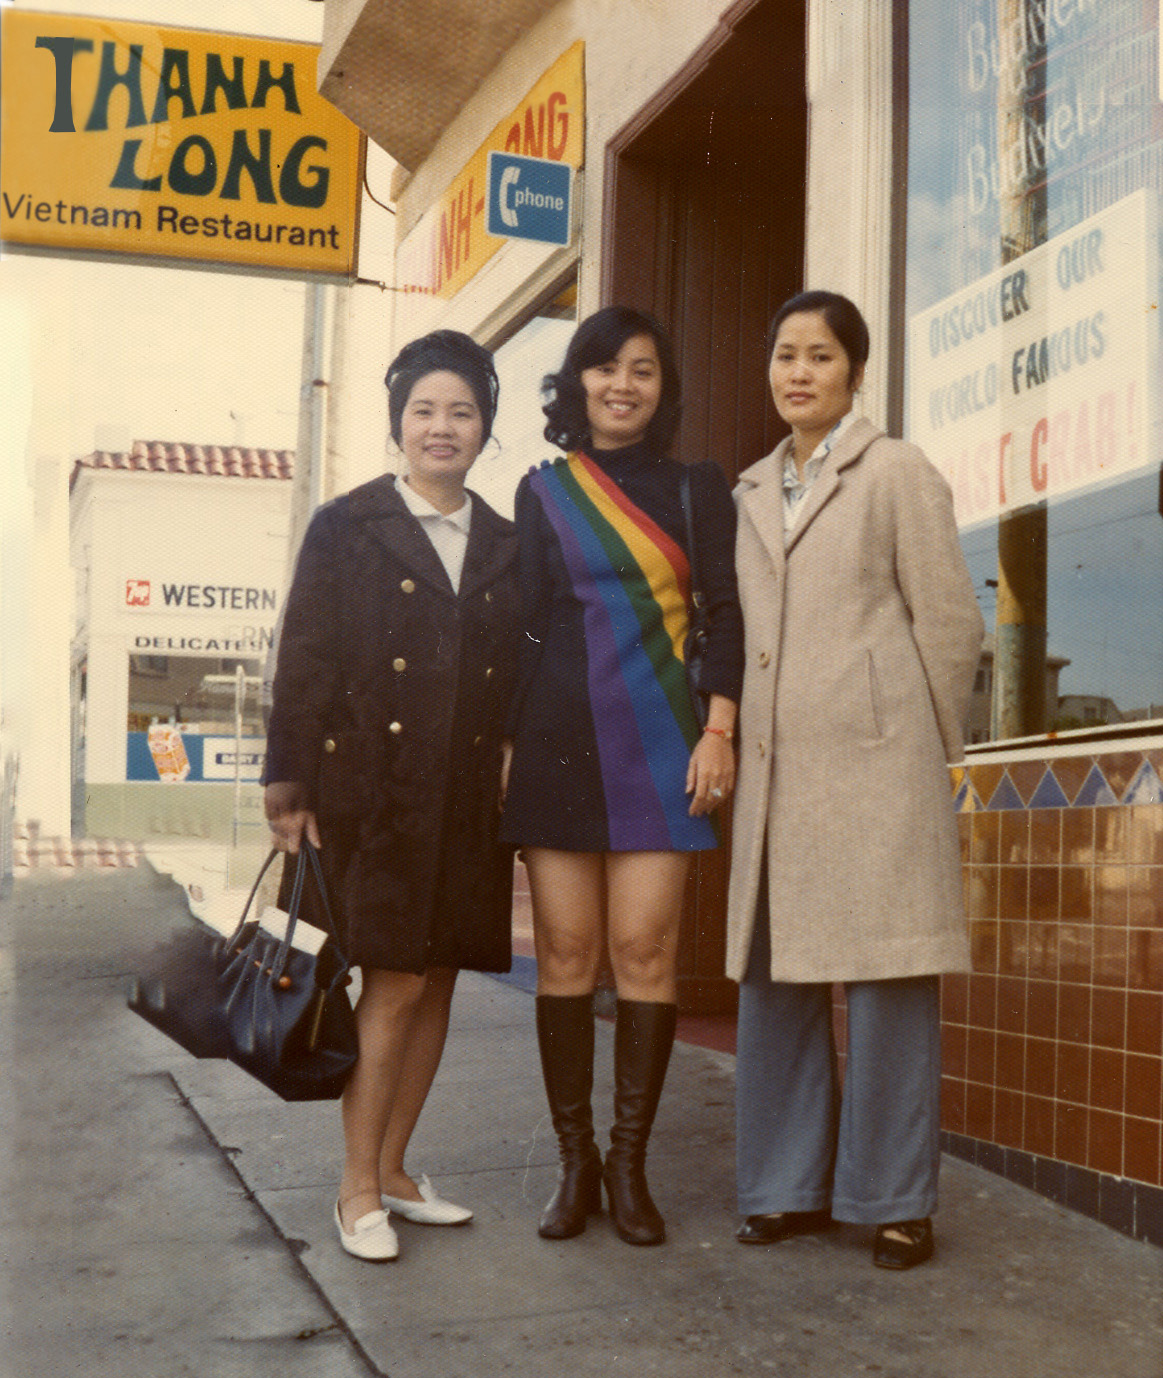 Diana An (left) poses with her cousins outside her restaurant Thanh Long, circa 1975.